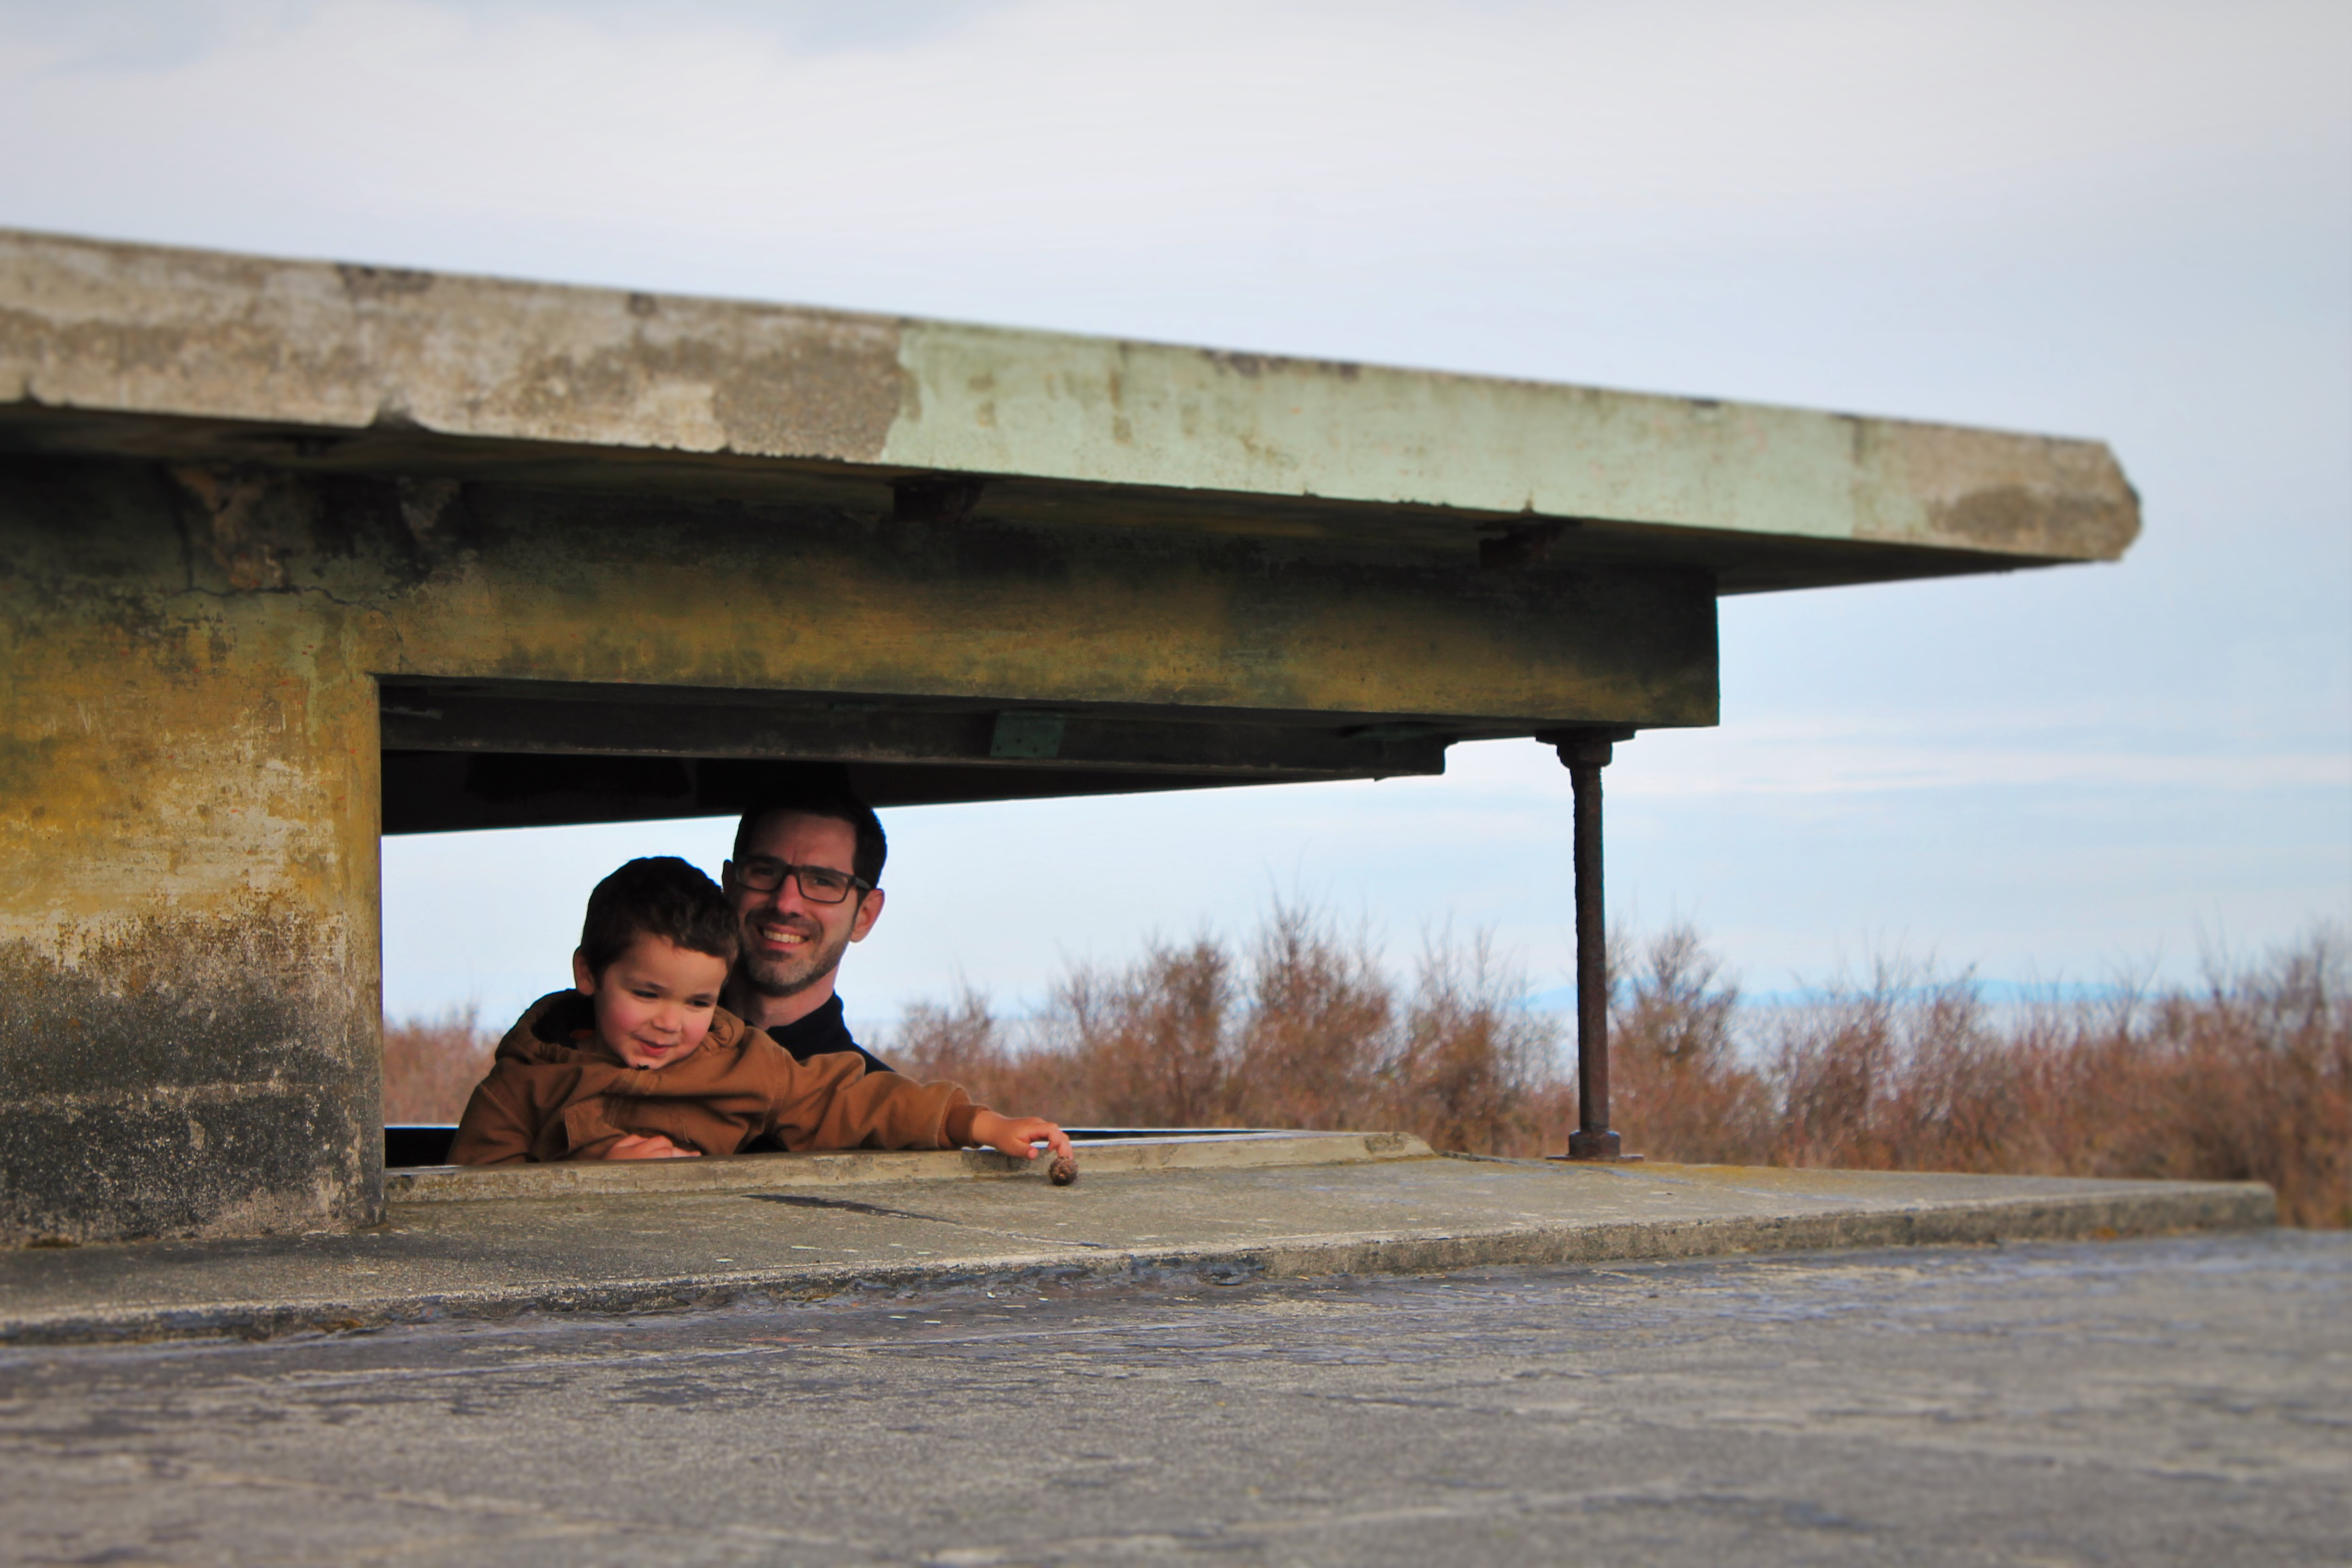 Chris Taylor and LittleMan in bunker at Fort Worden Port Townsend 3